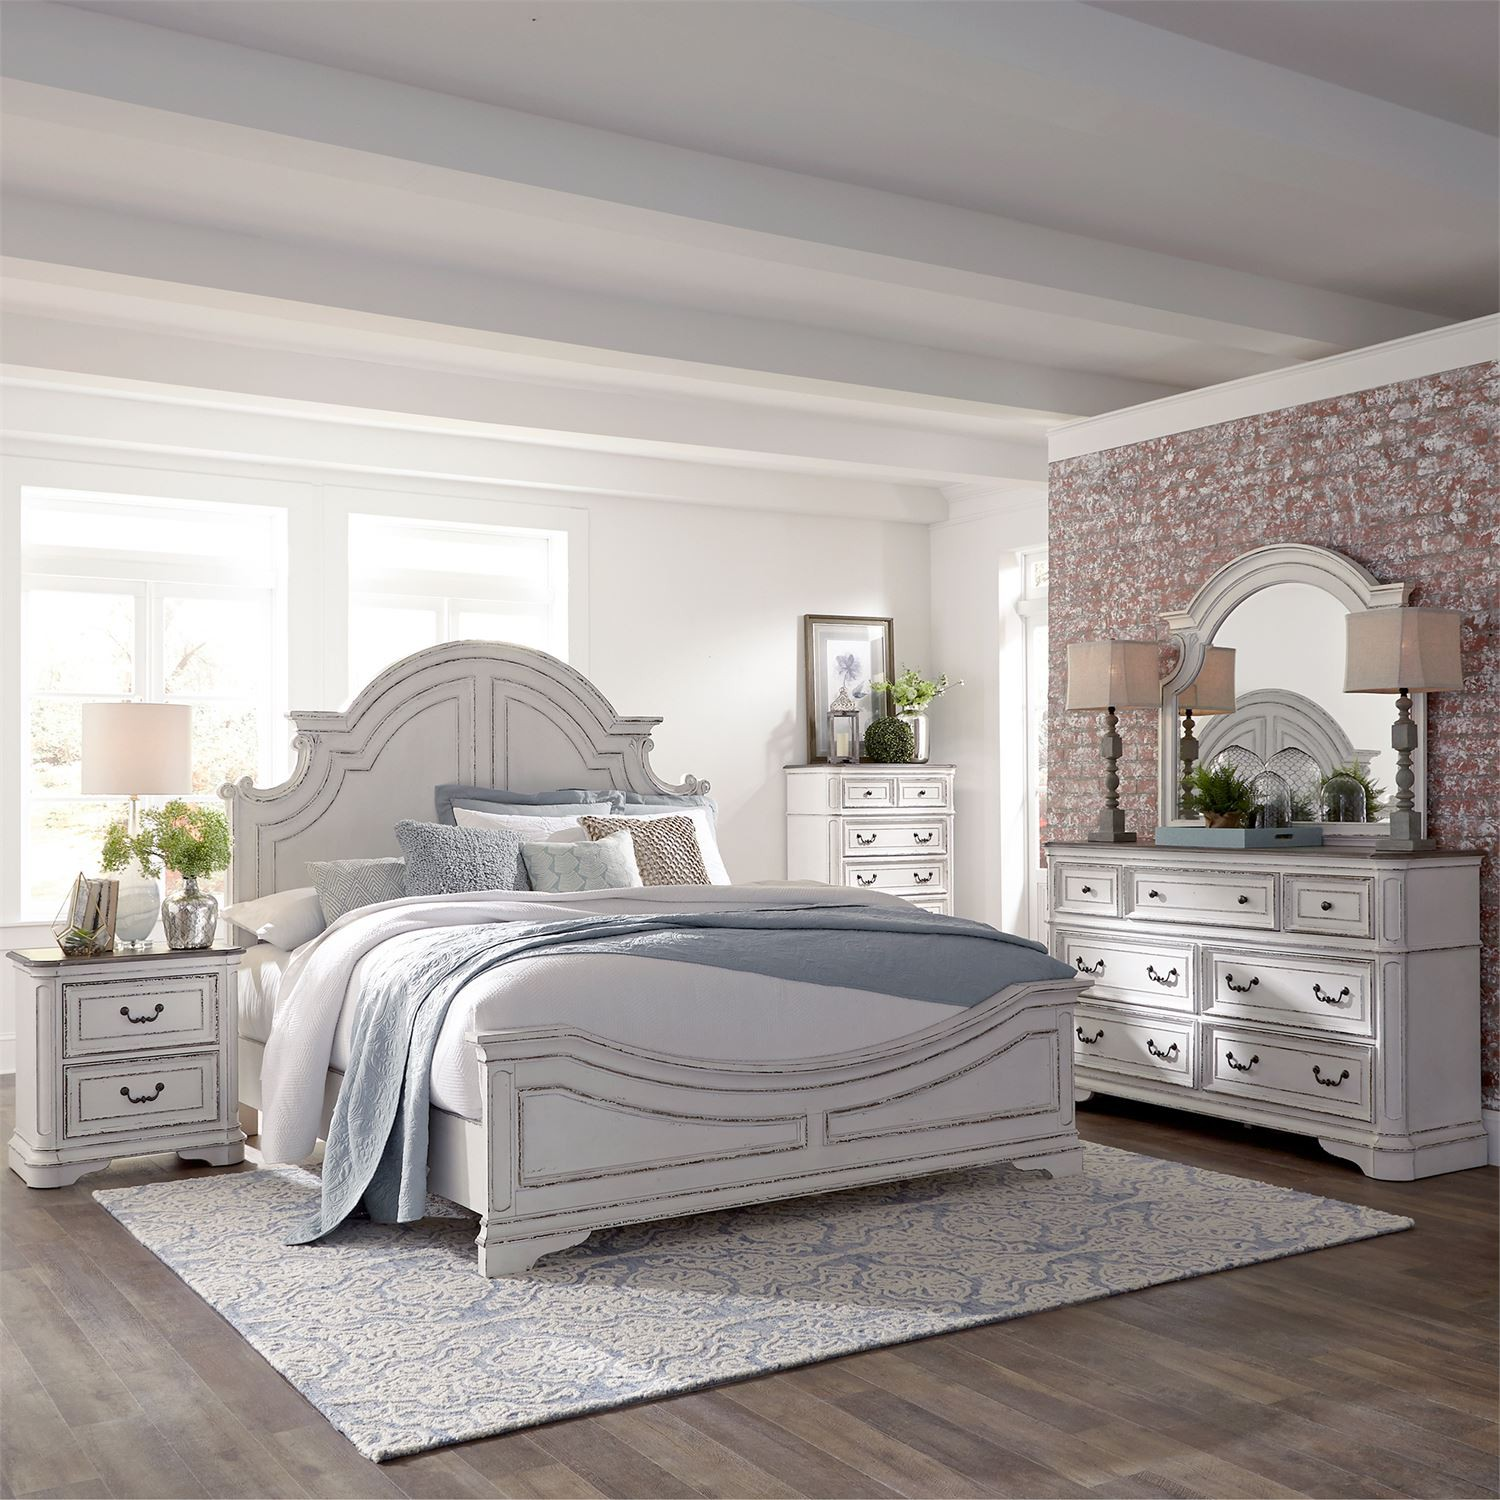 "Liberty 244 ""Magnolia Manor"" 7 Pc Bedroom"